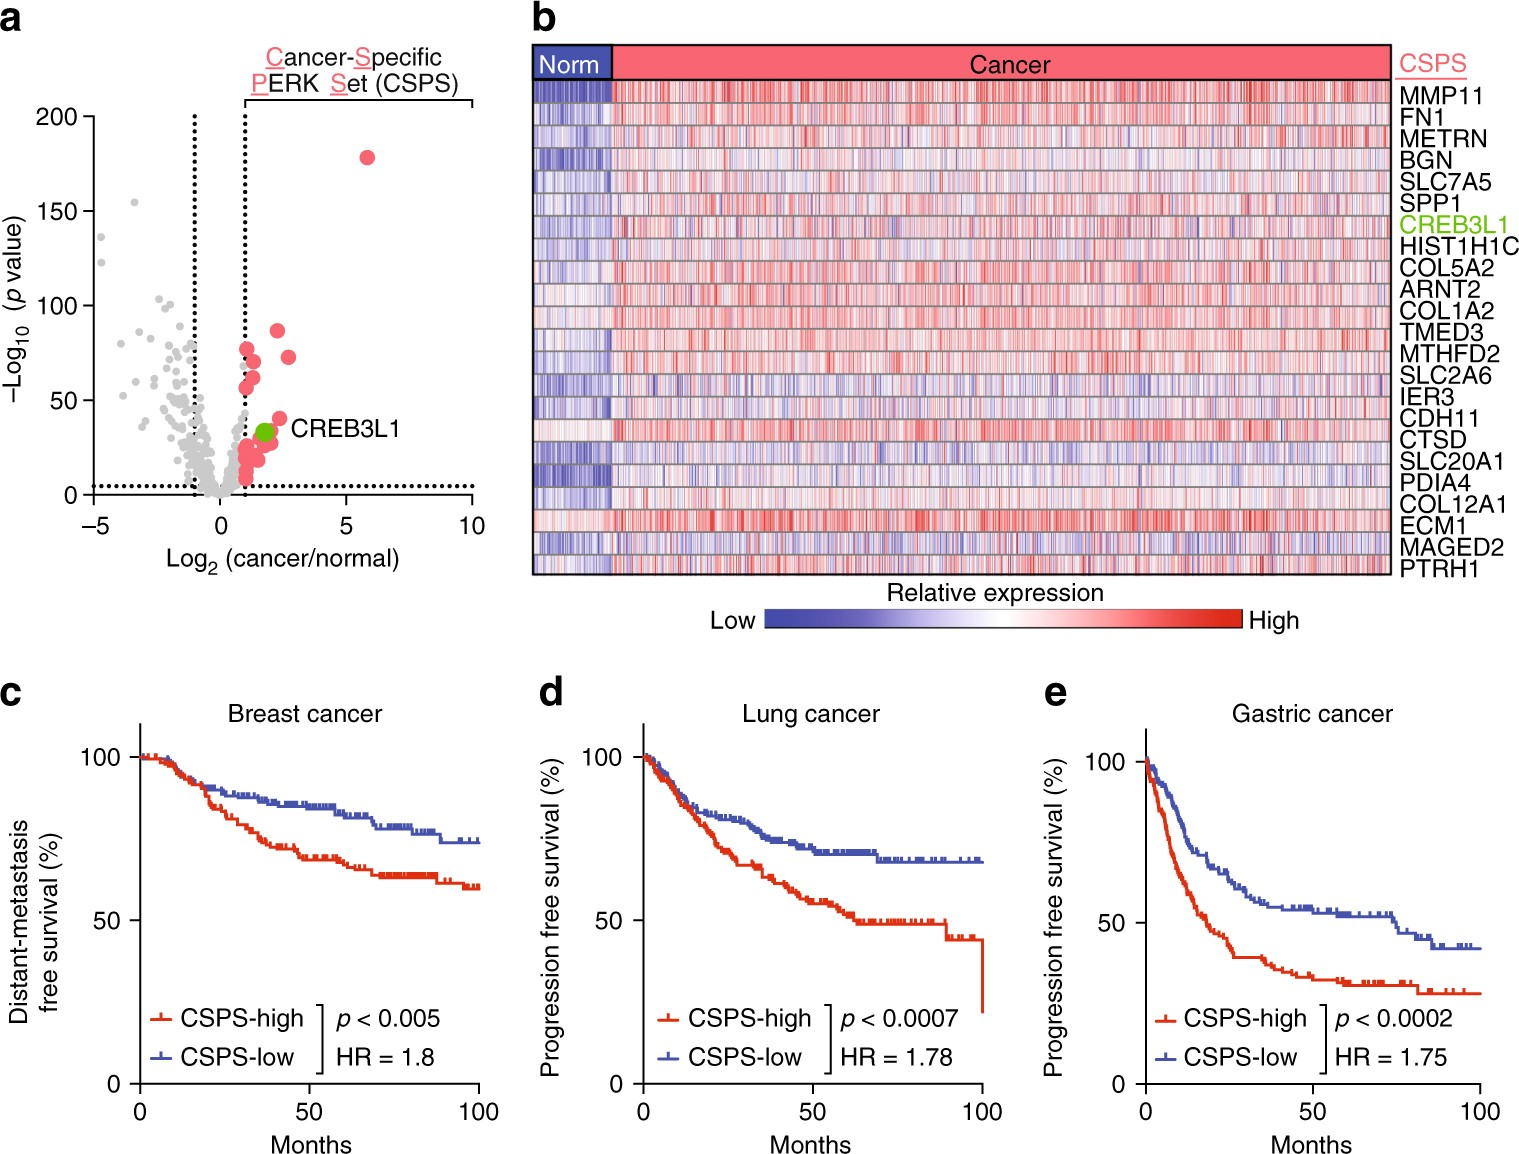 Cancer-specific PERK signaling drives invasion and metastasis